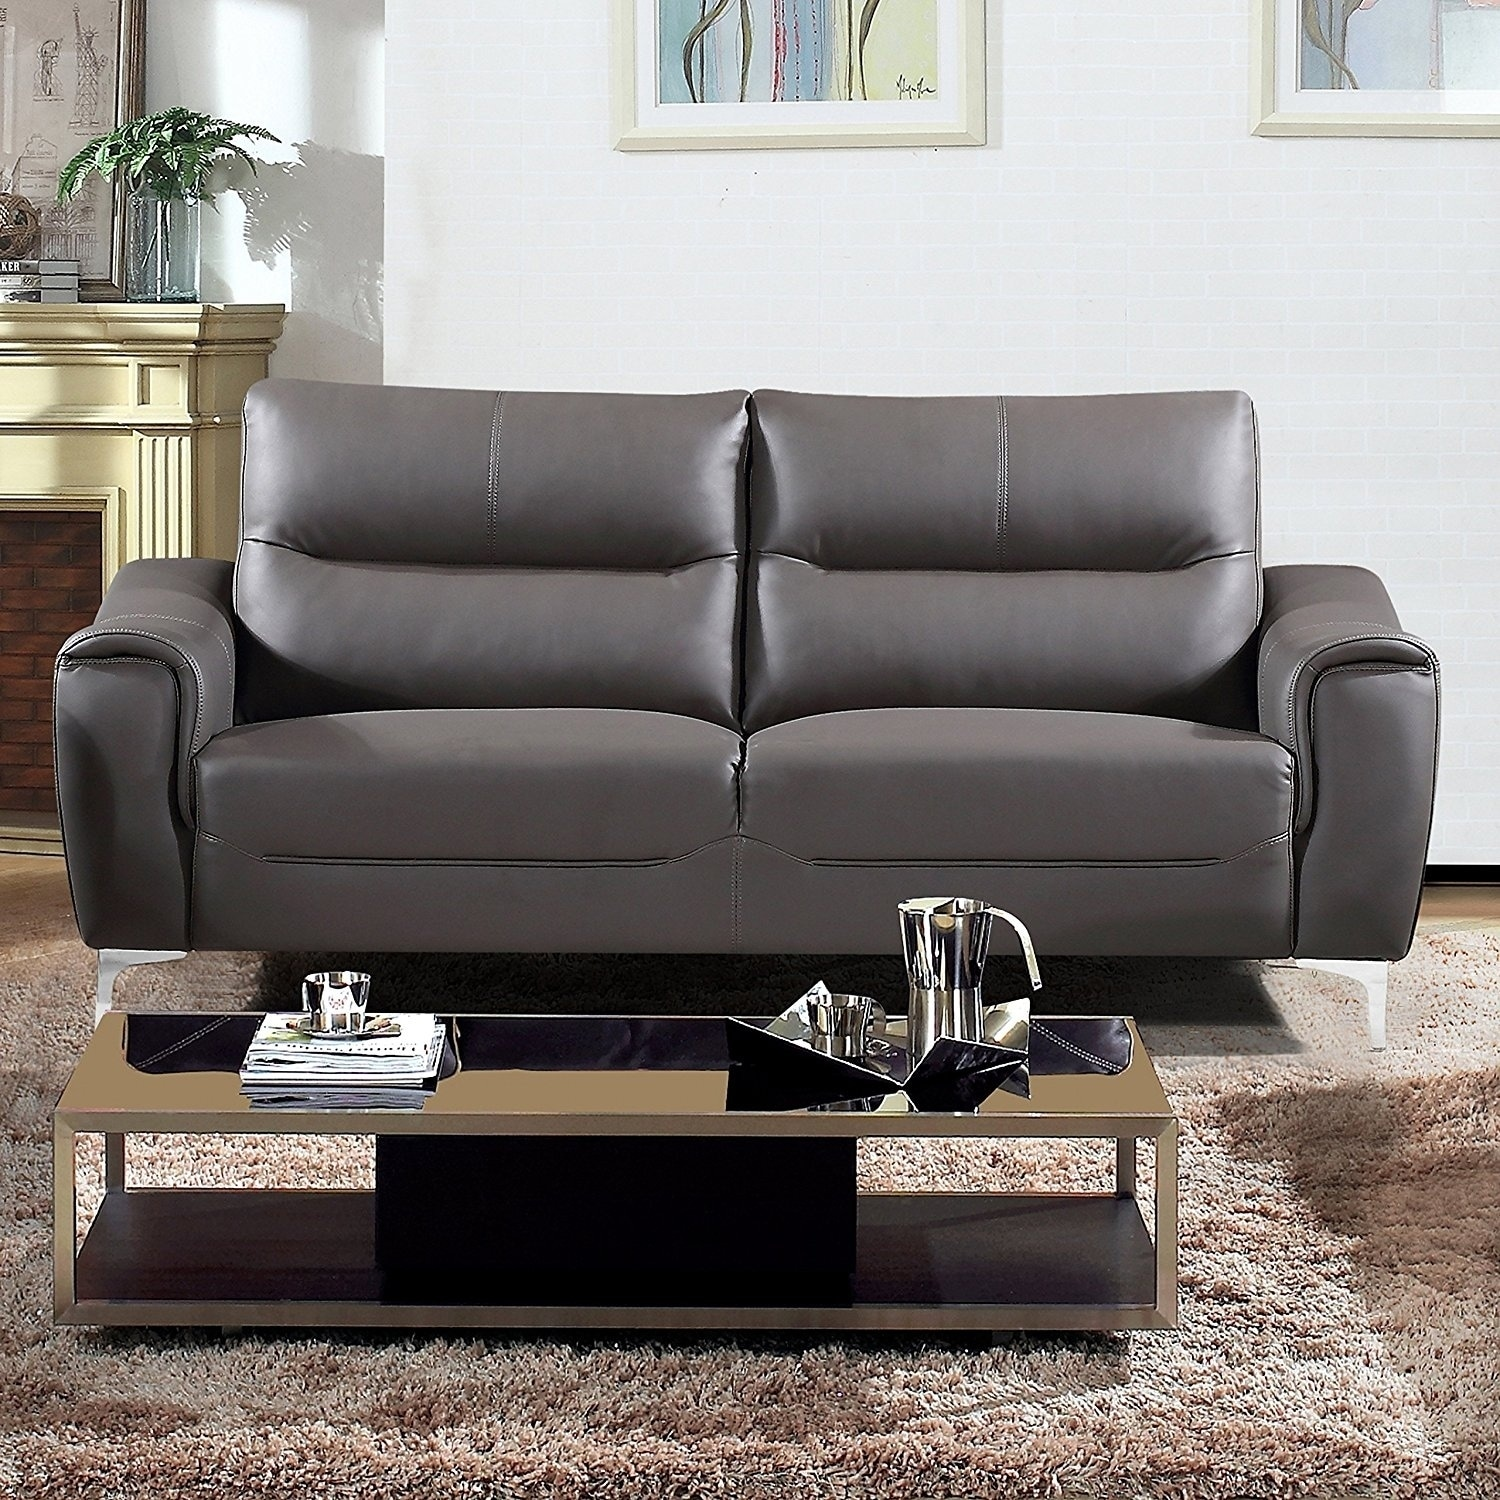 AC Pacific Rachel Collection Modern Style Grey Leather Upholstered Living Room Sofa